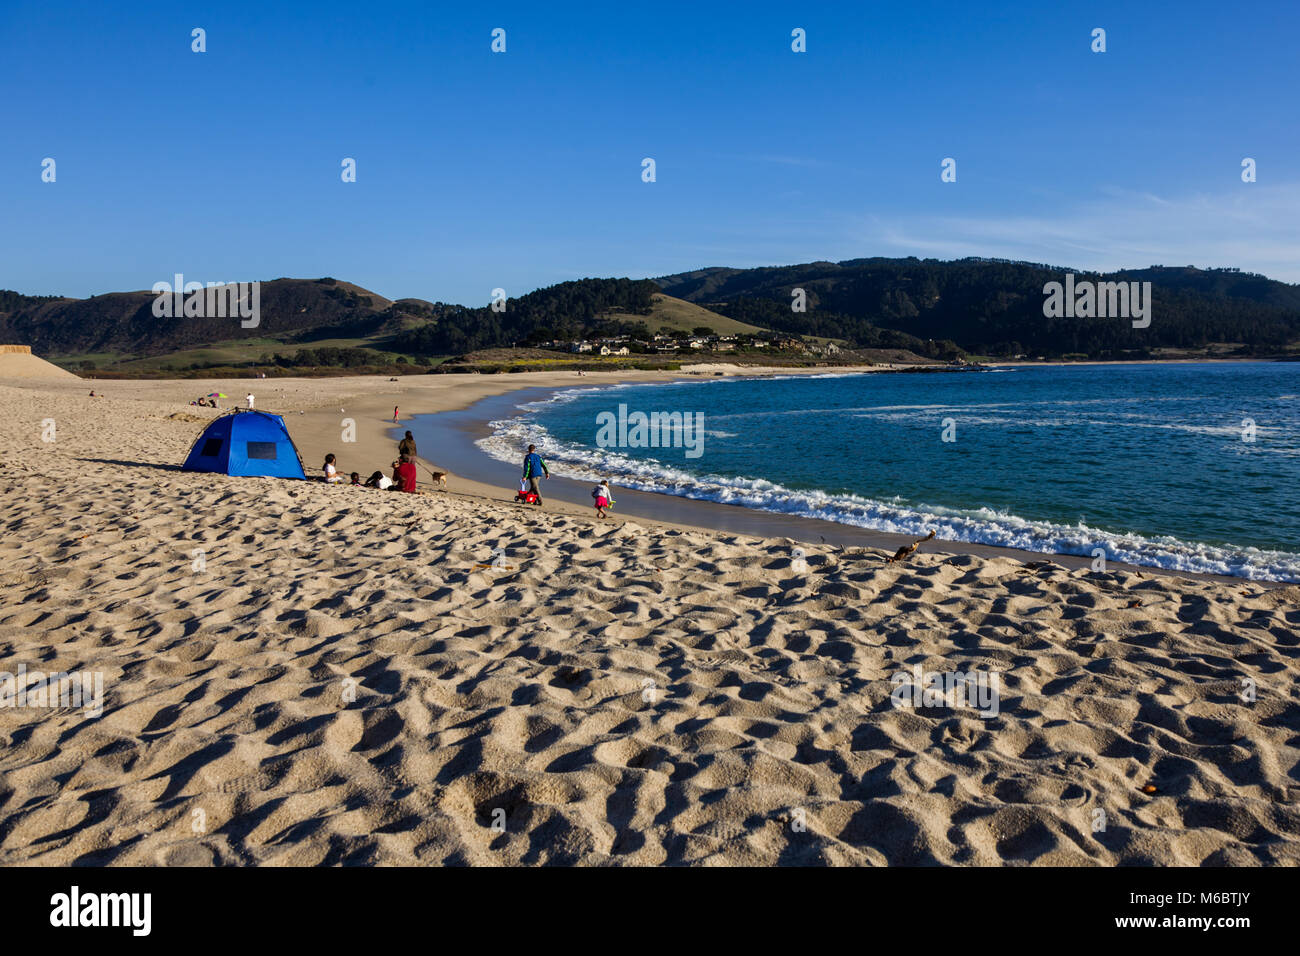 camping on the beach at carmel by the sea, california, usa stock